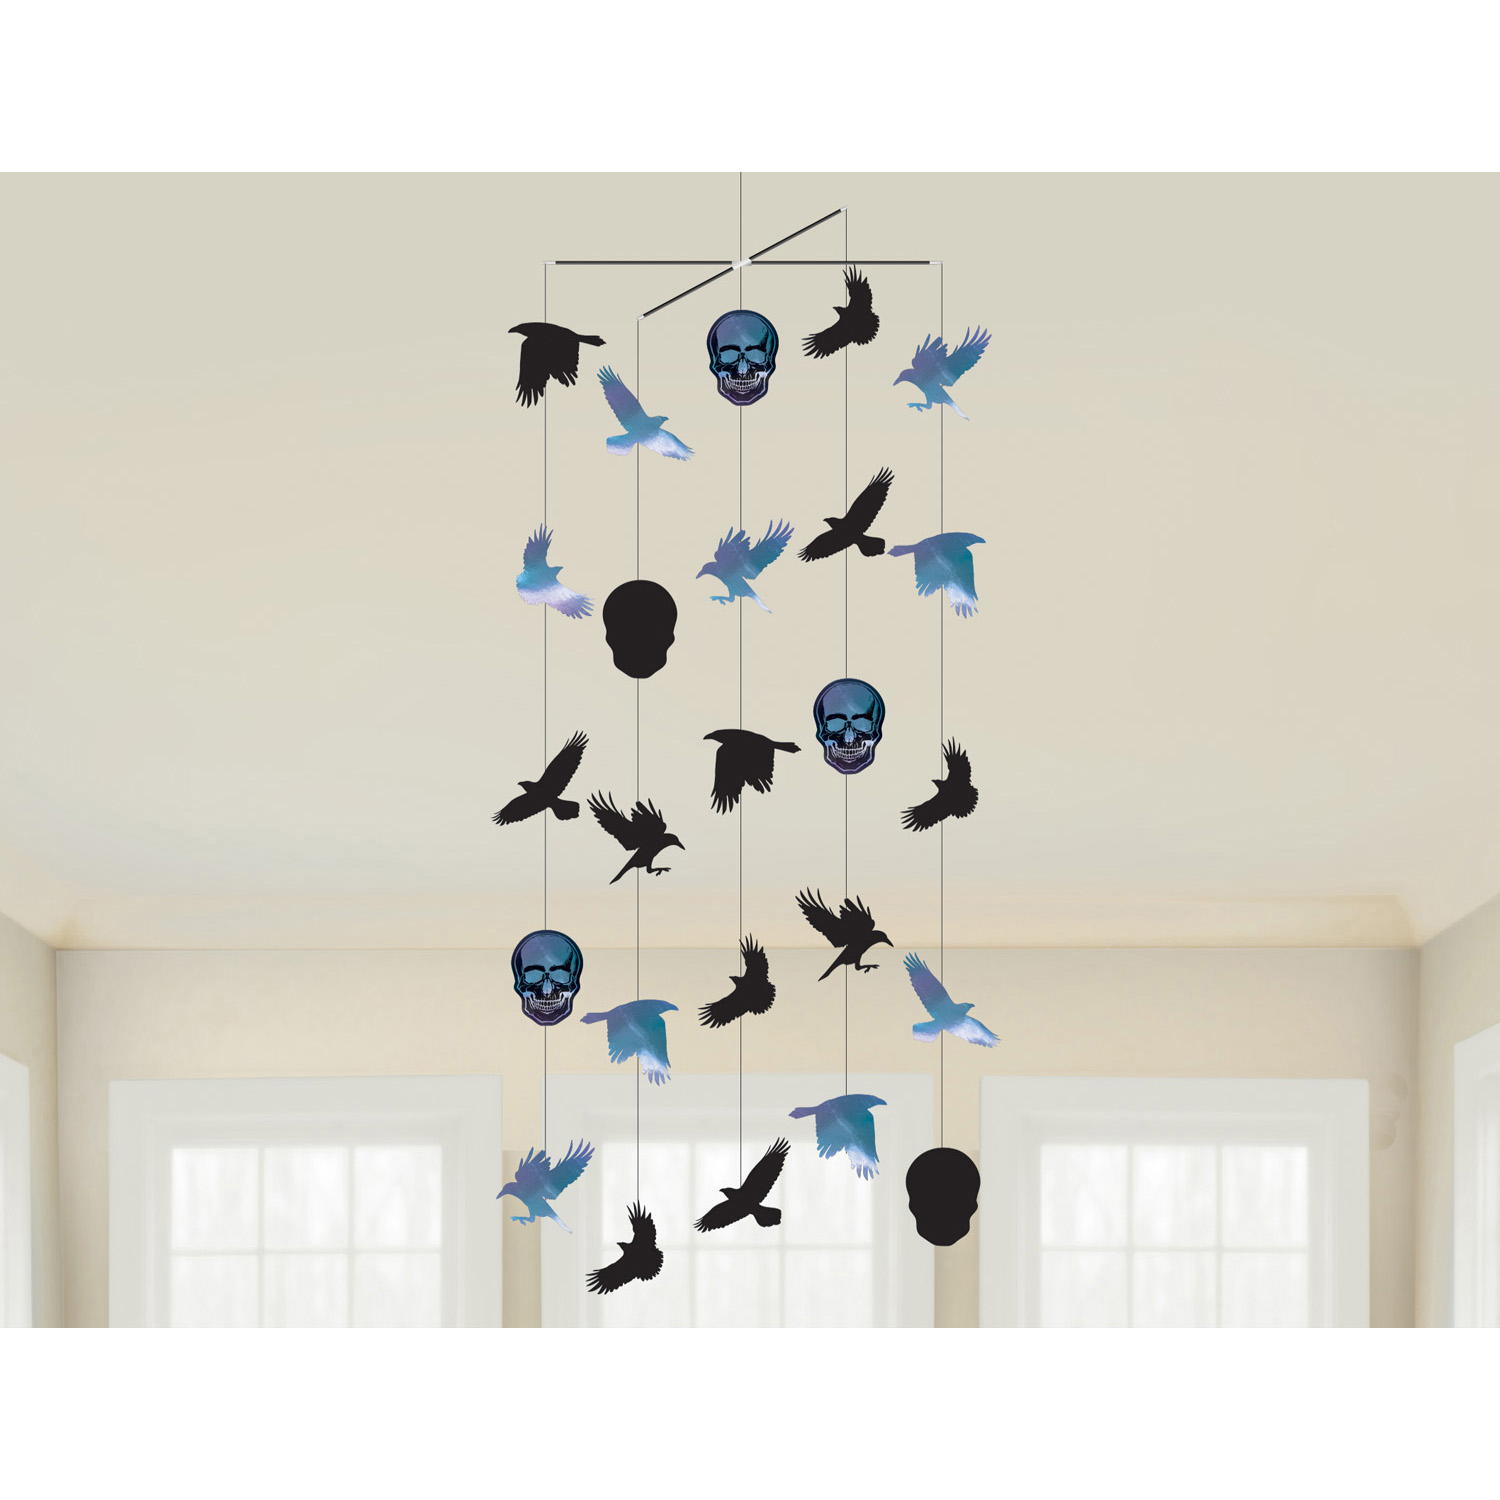 Boneshine Fever Party Mobile Hanging Decorations